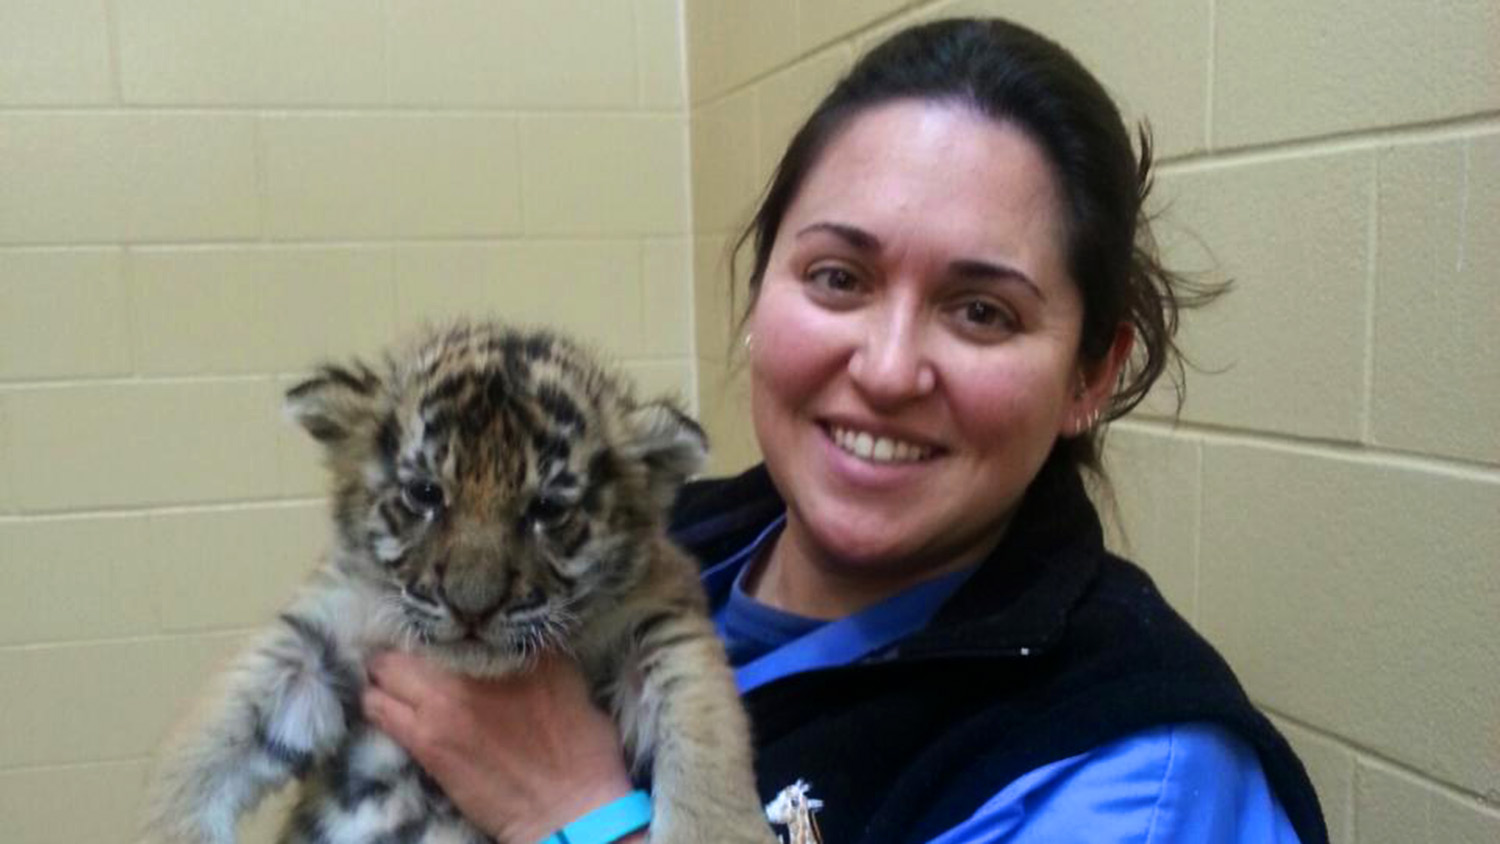 Amanda Guthrie holding baby tiger